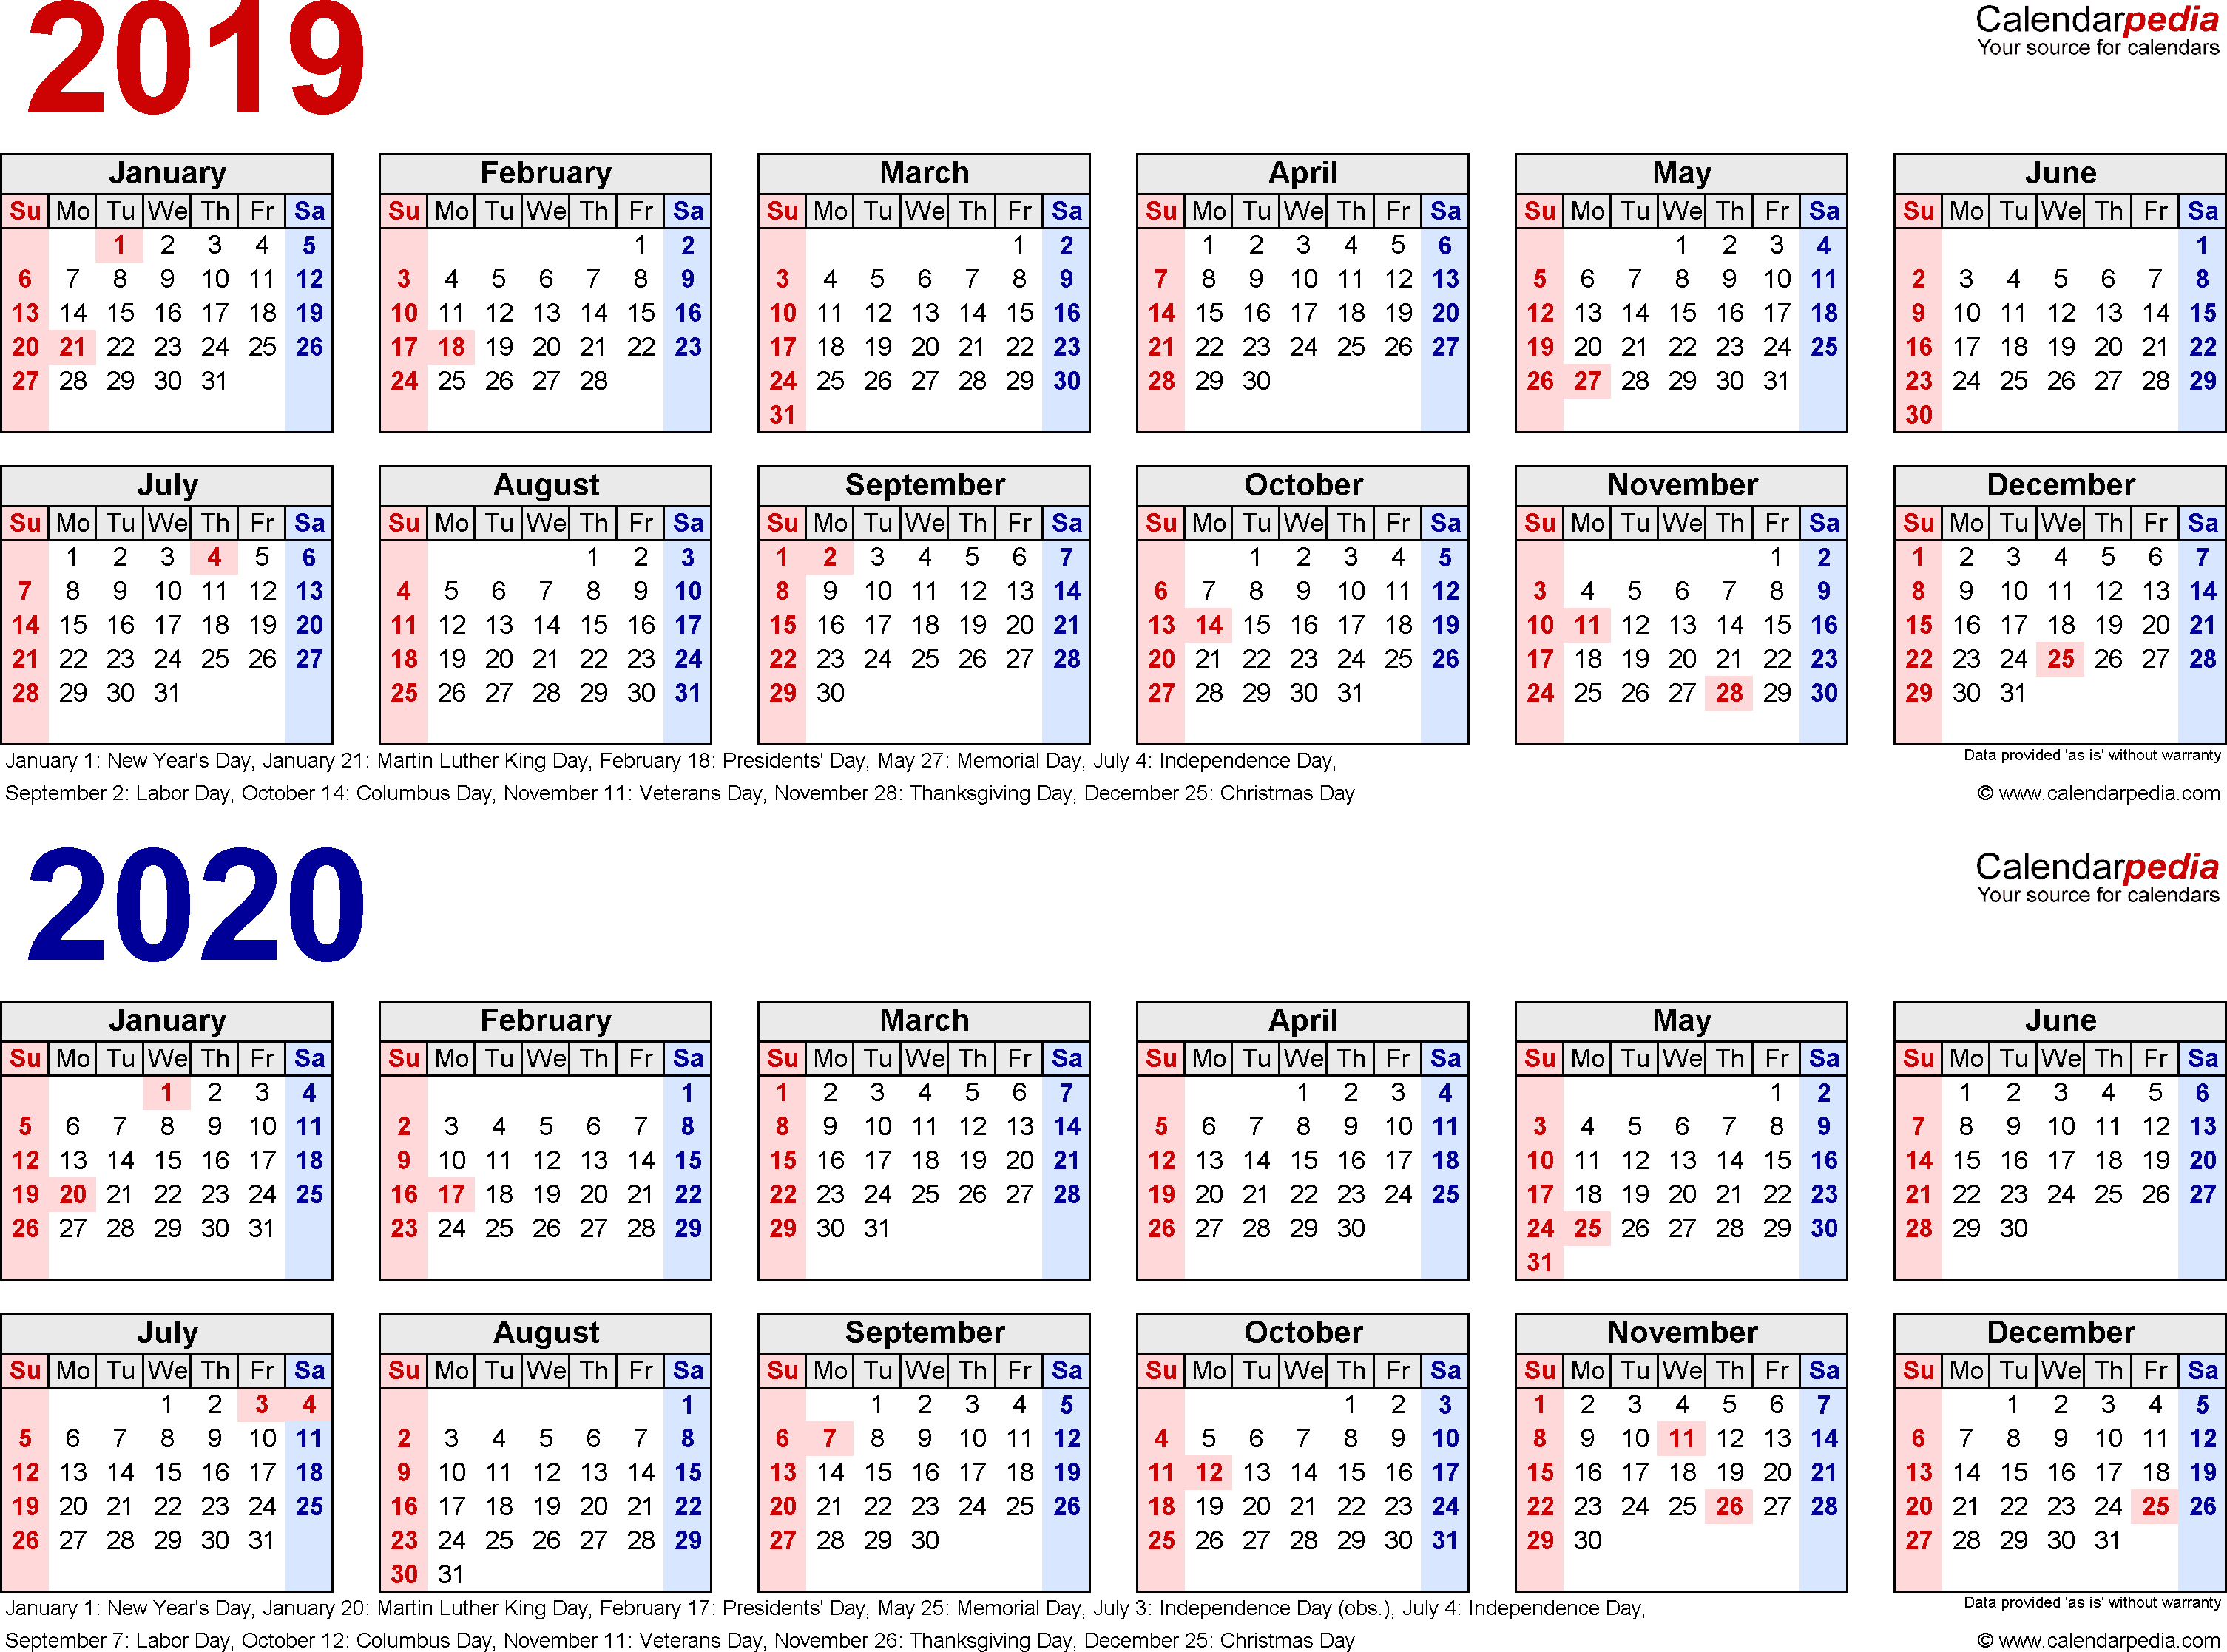 2019-2020 Calendar - Free Printable Two-Year Pdf Calendars throughout Portriat Style Free Printable Calendar 2019-2020